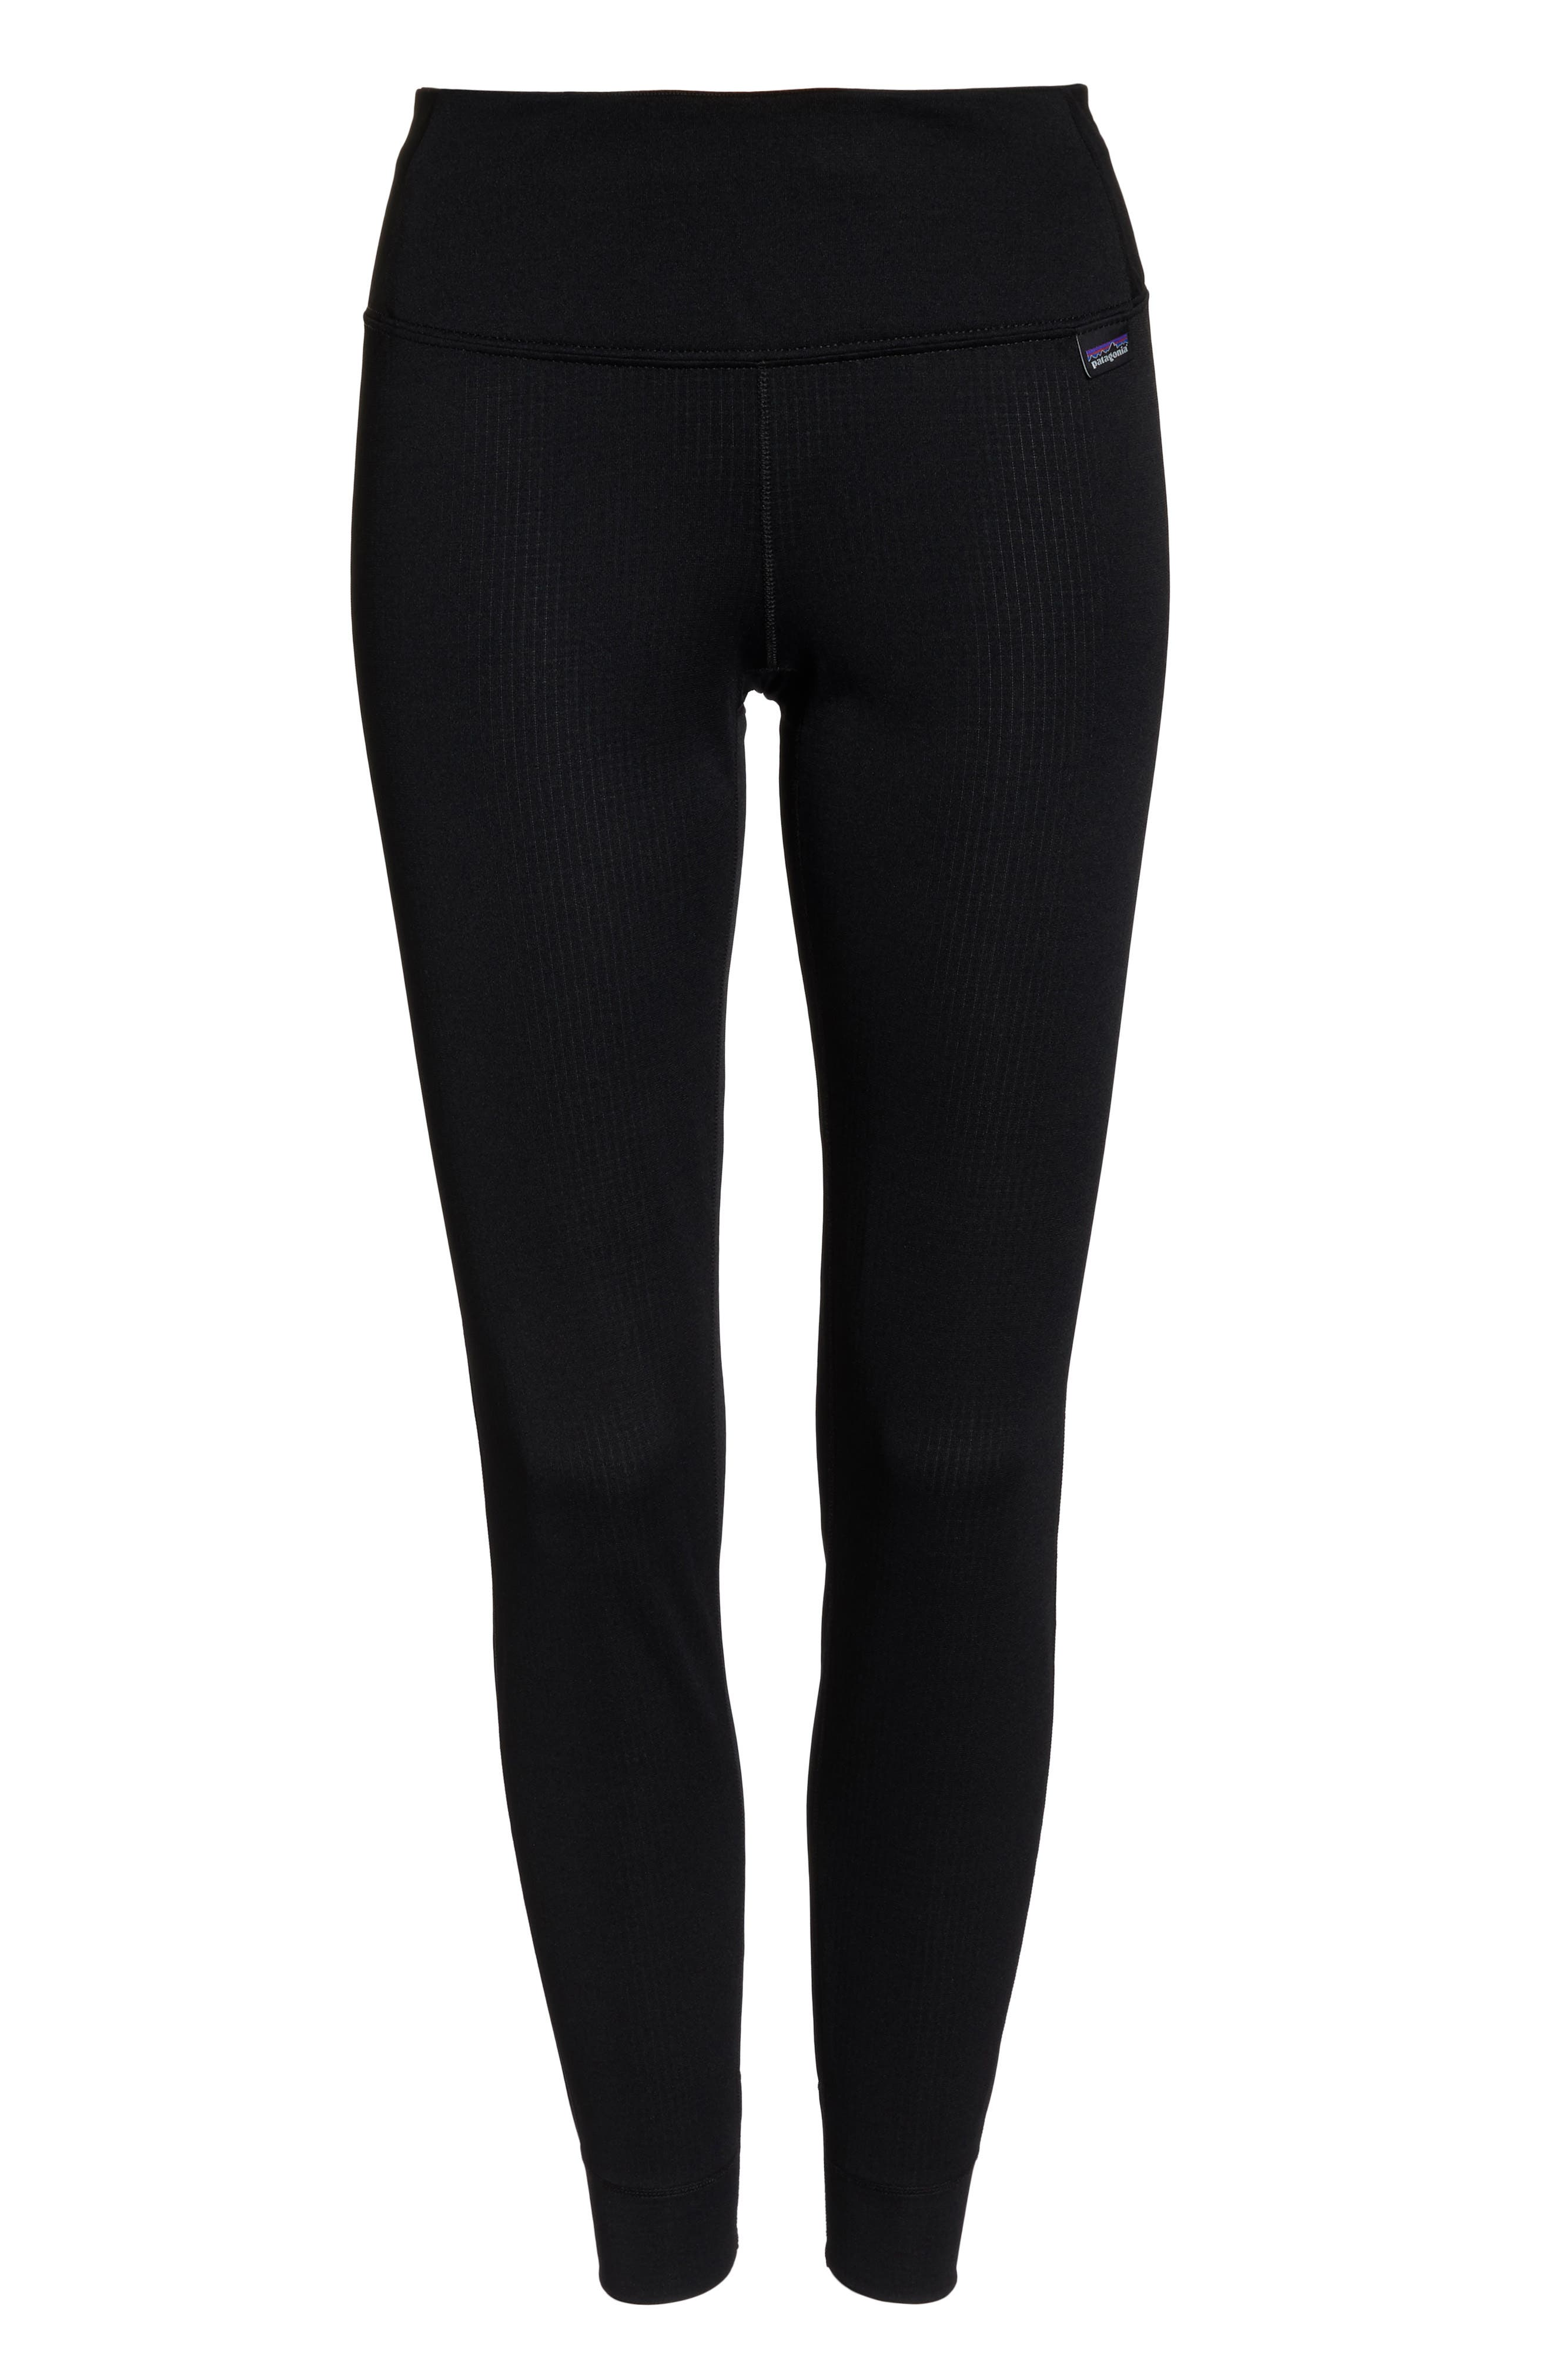 Capilene Midweight Base Layer Tights,                             Alternate thumbnail 7, color,                             BLACK